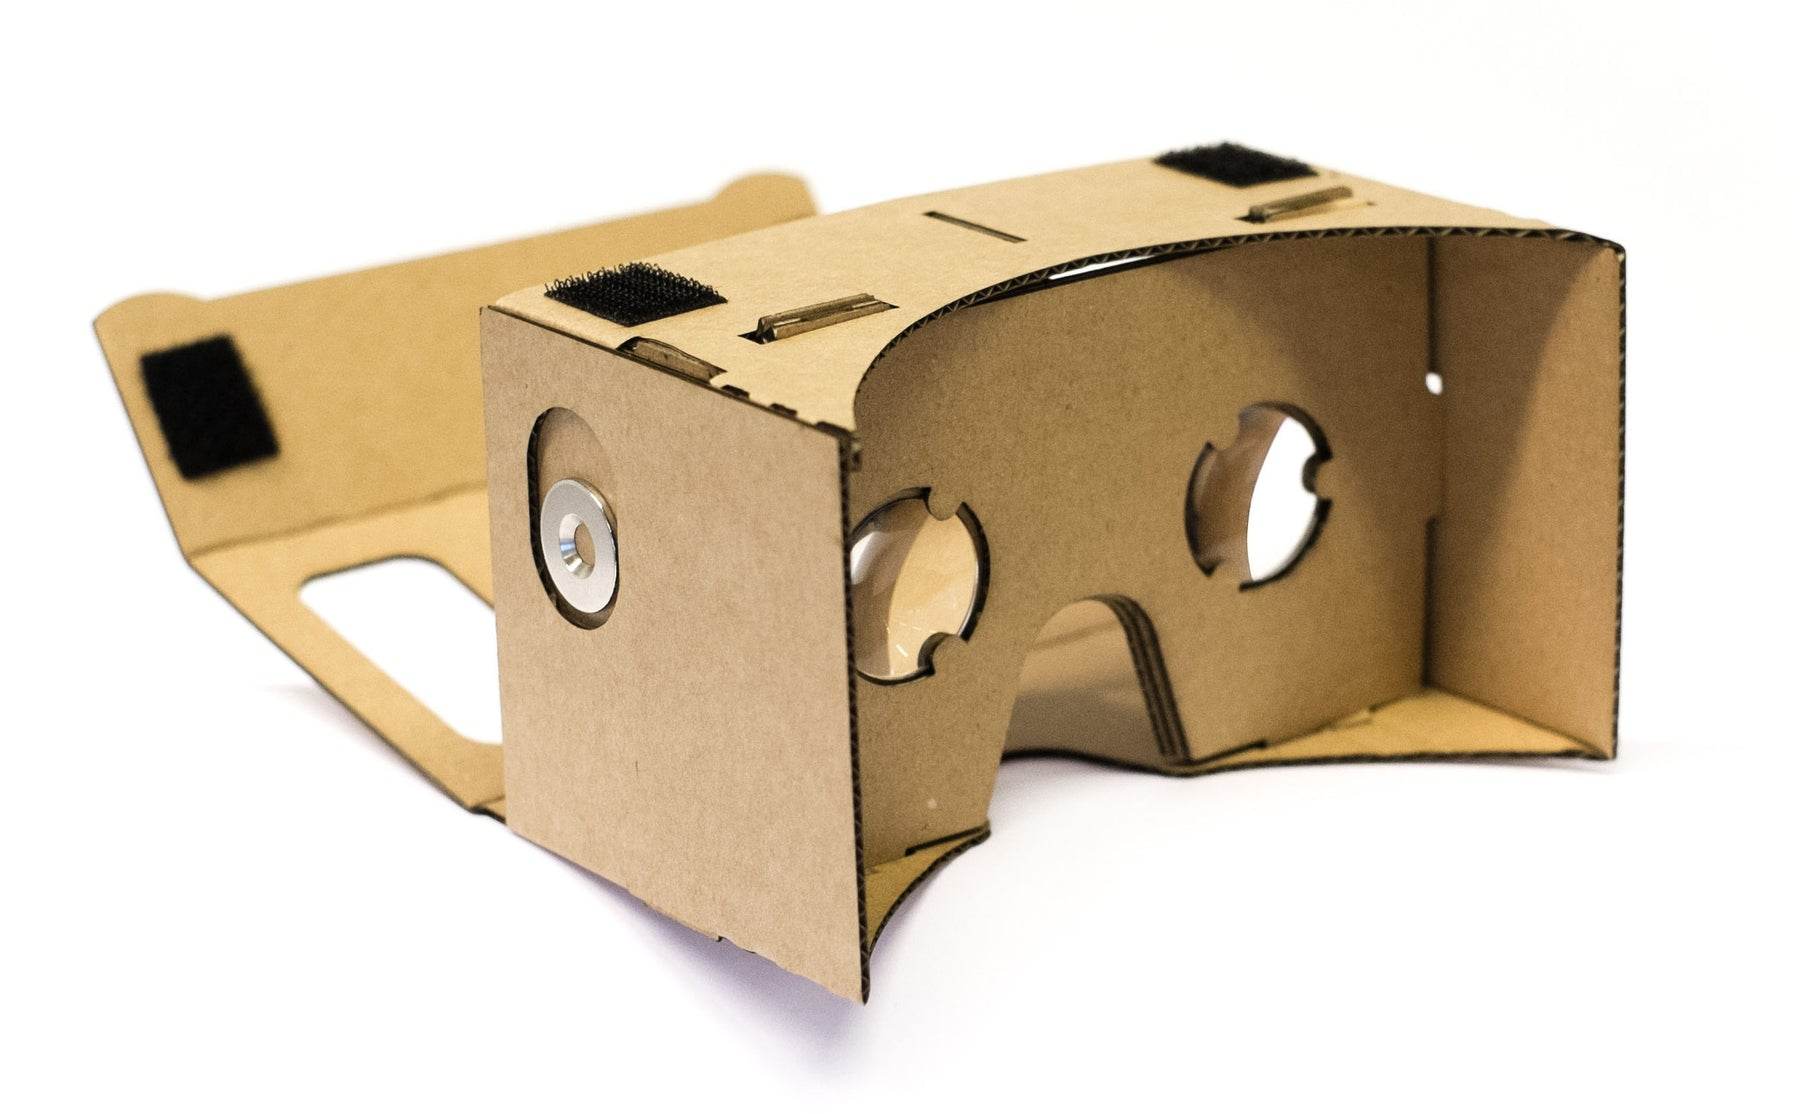 Knox NEXT | Google Cardboard VR headset (for large lenses) – Classroom Bundle – 10 Pack